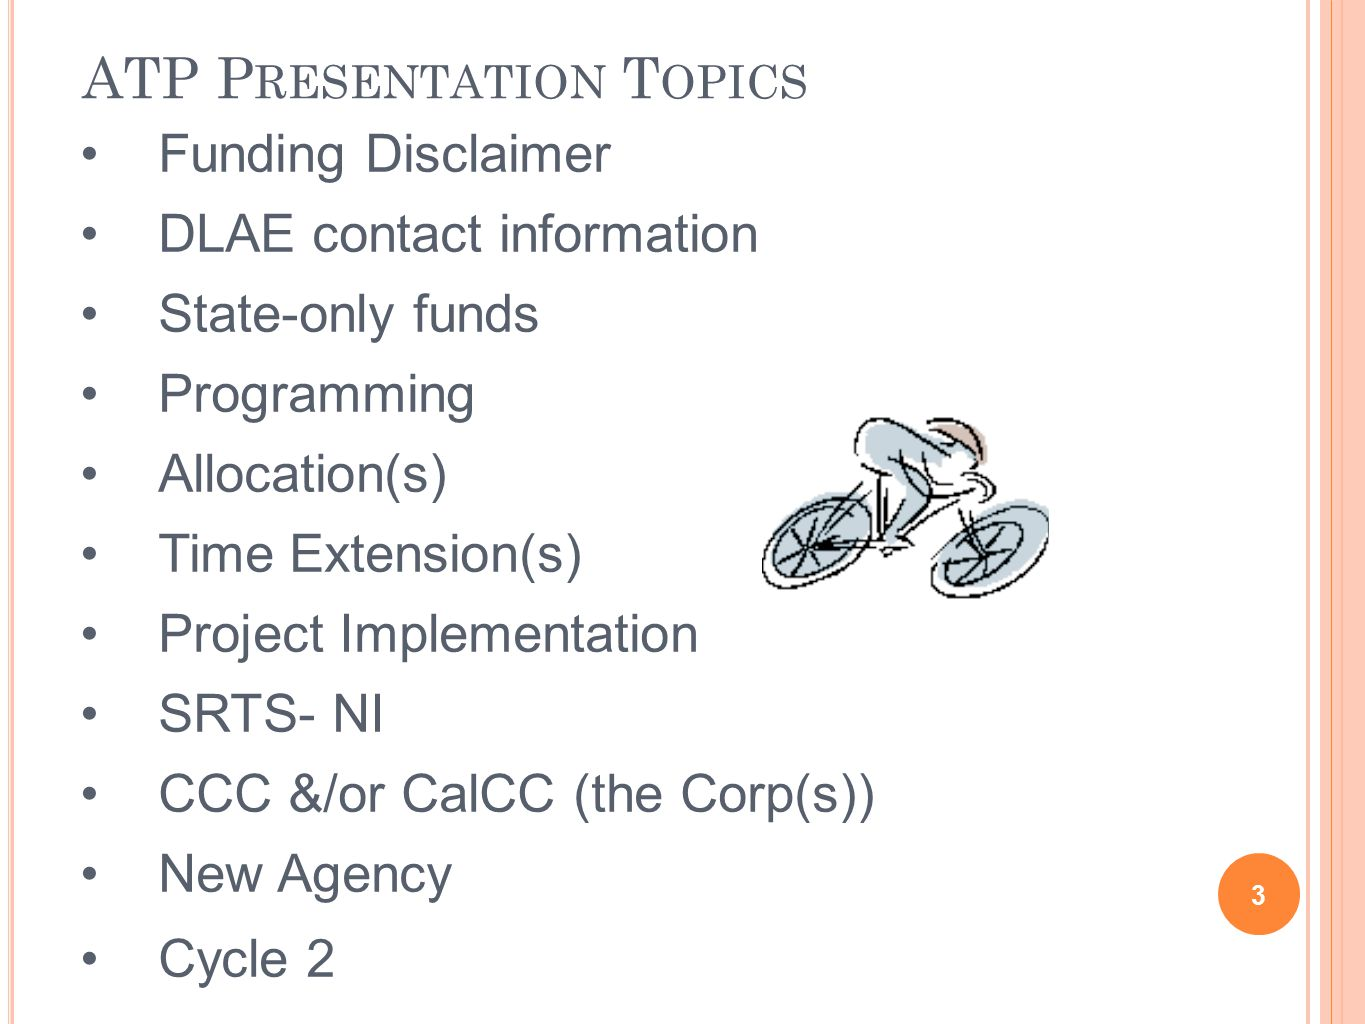 Funding Disclaimer DLAE contact information State-only funds Programming Allocation(s) Time Extension(s) Project Implementation SRTS- NI CCC &/or CalCC (the Corp(s)) New Agency Cycle 2 ATP P RESENTATION T OPICS 3